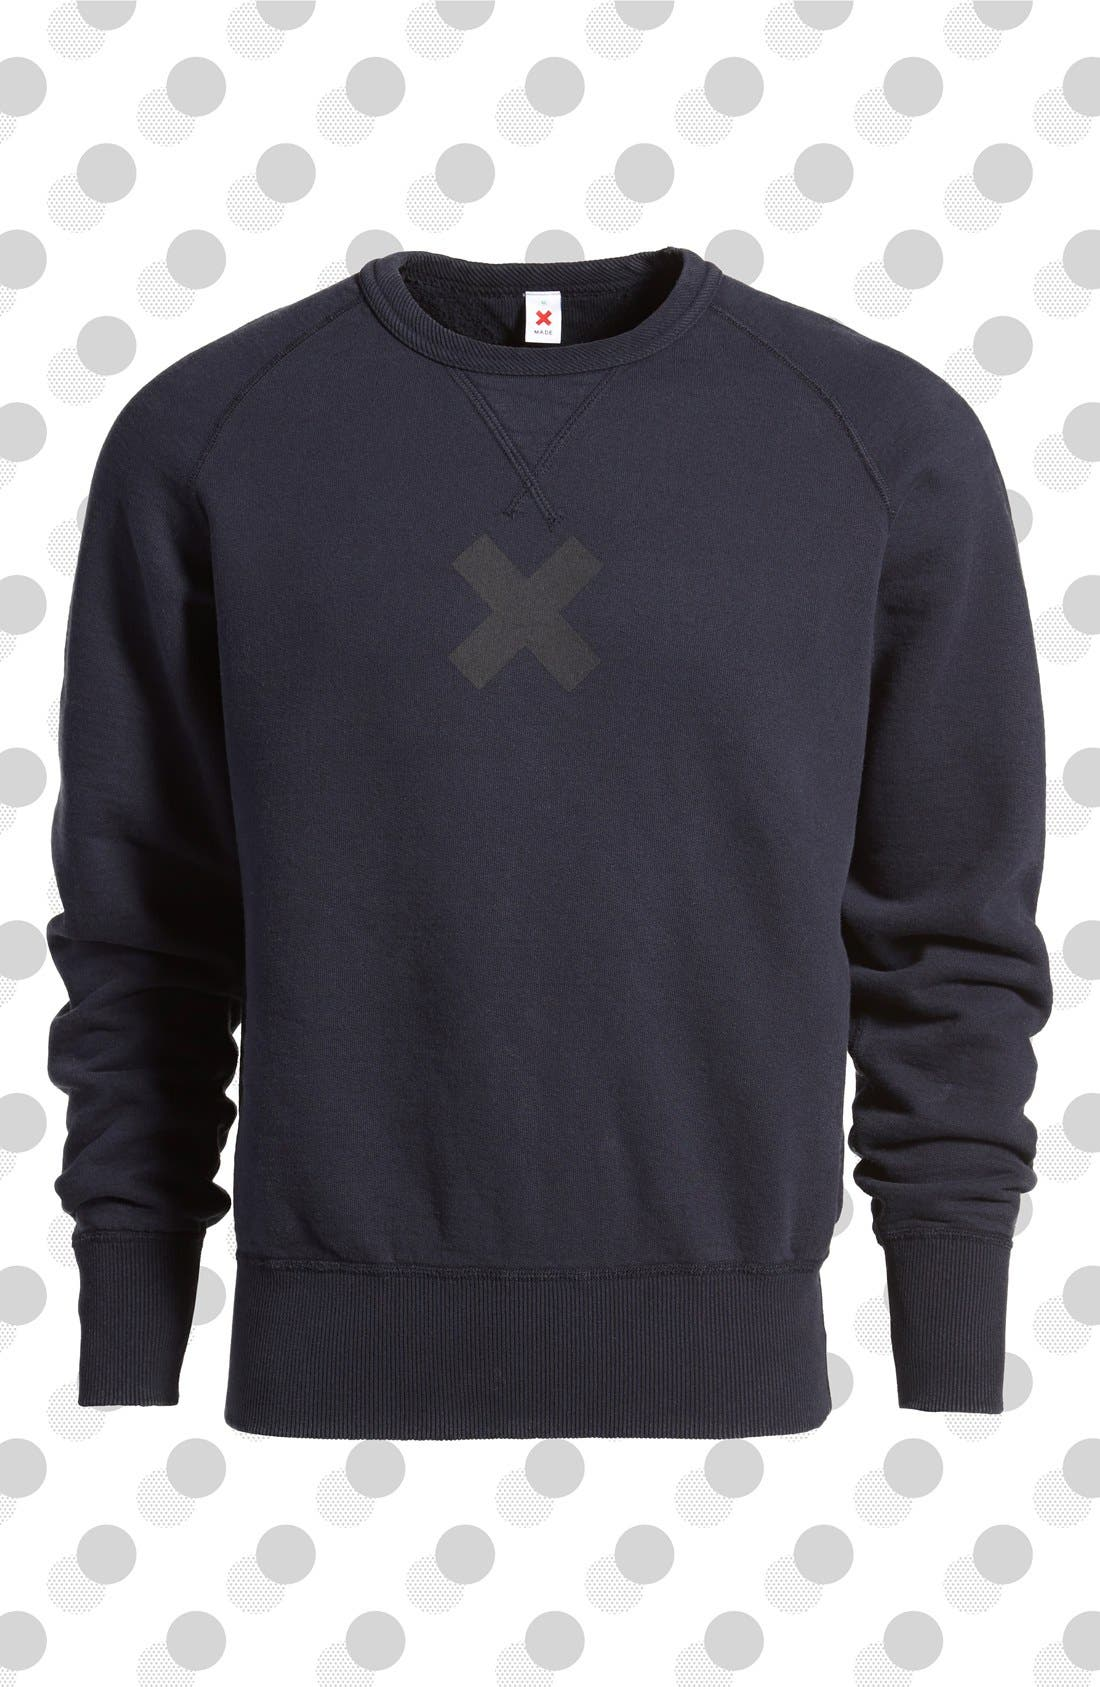 BEST MADE CO.,                             Best Made Co '20 oz. Standard' Sweatshirt,                             Main thumbnail 1, color,                             400